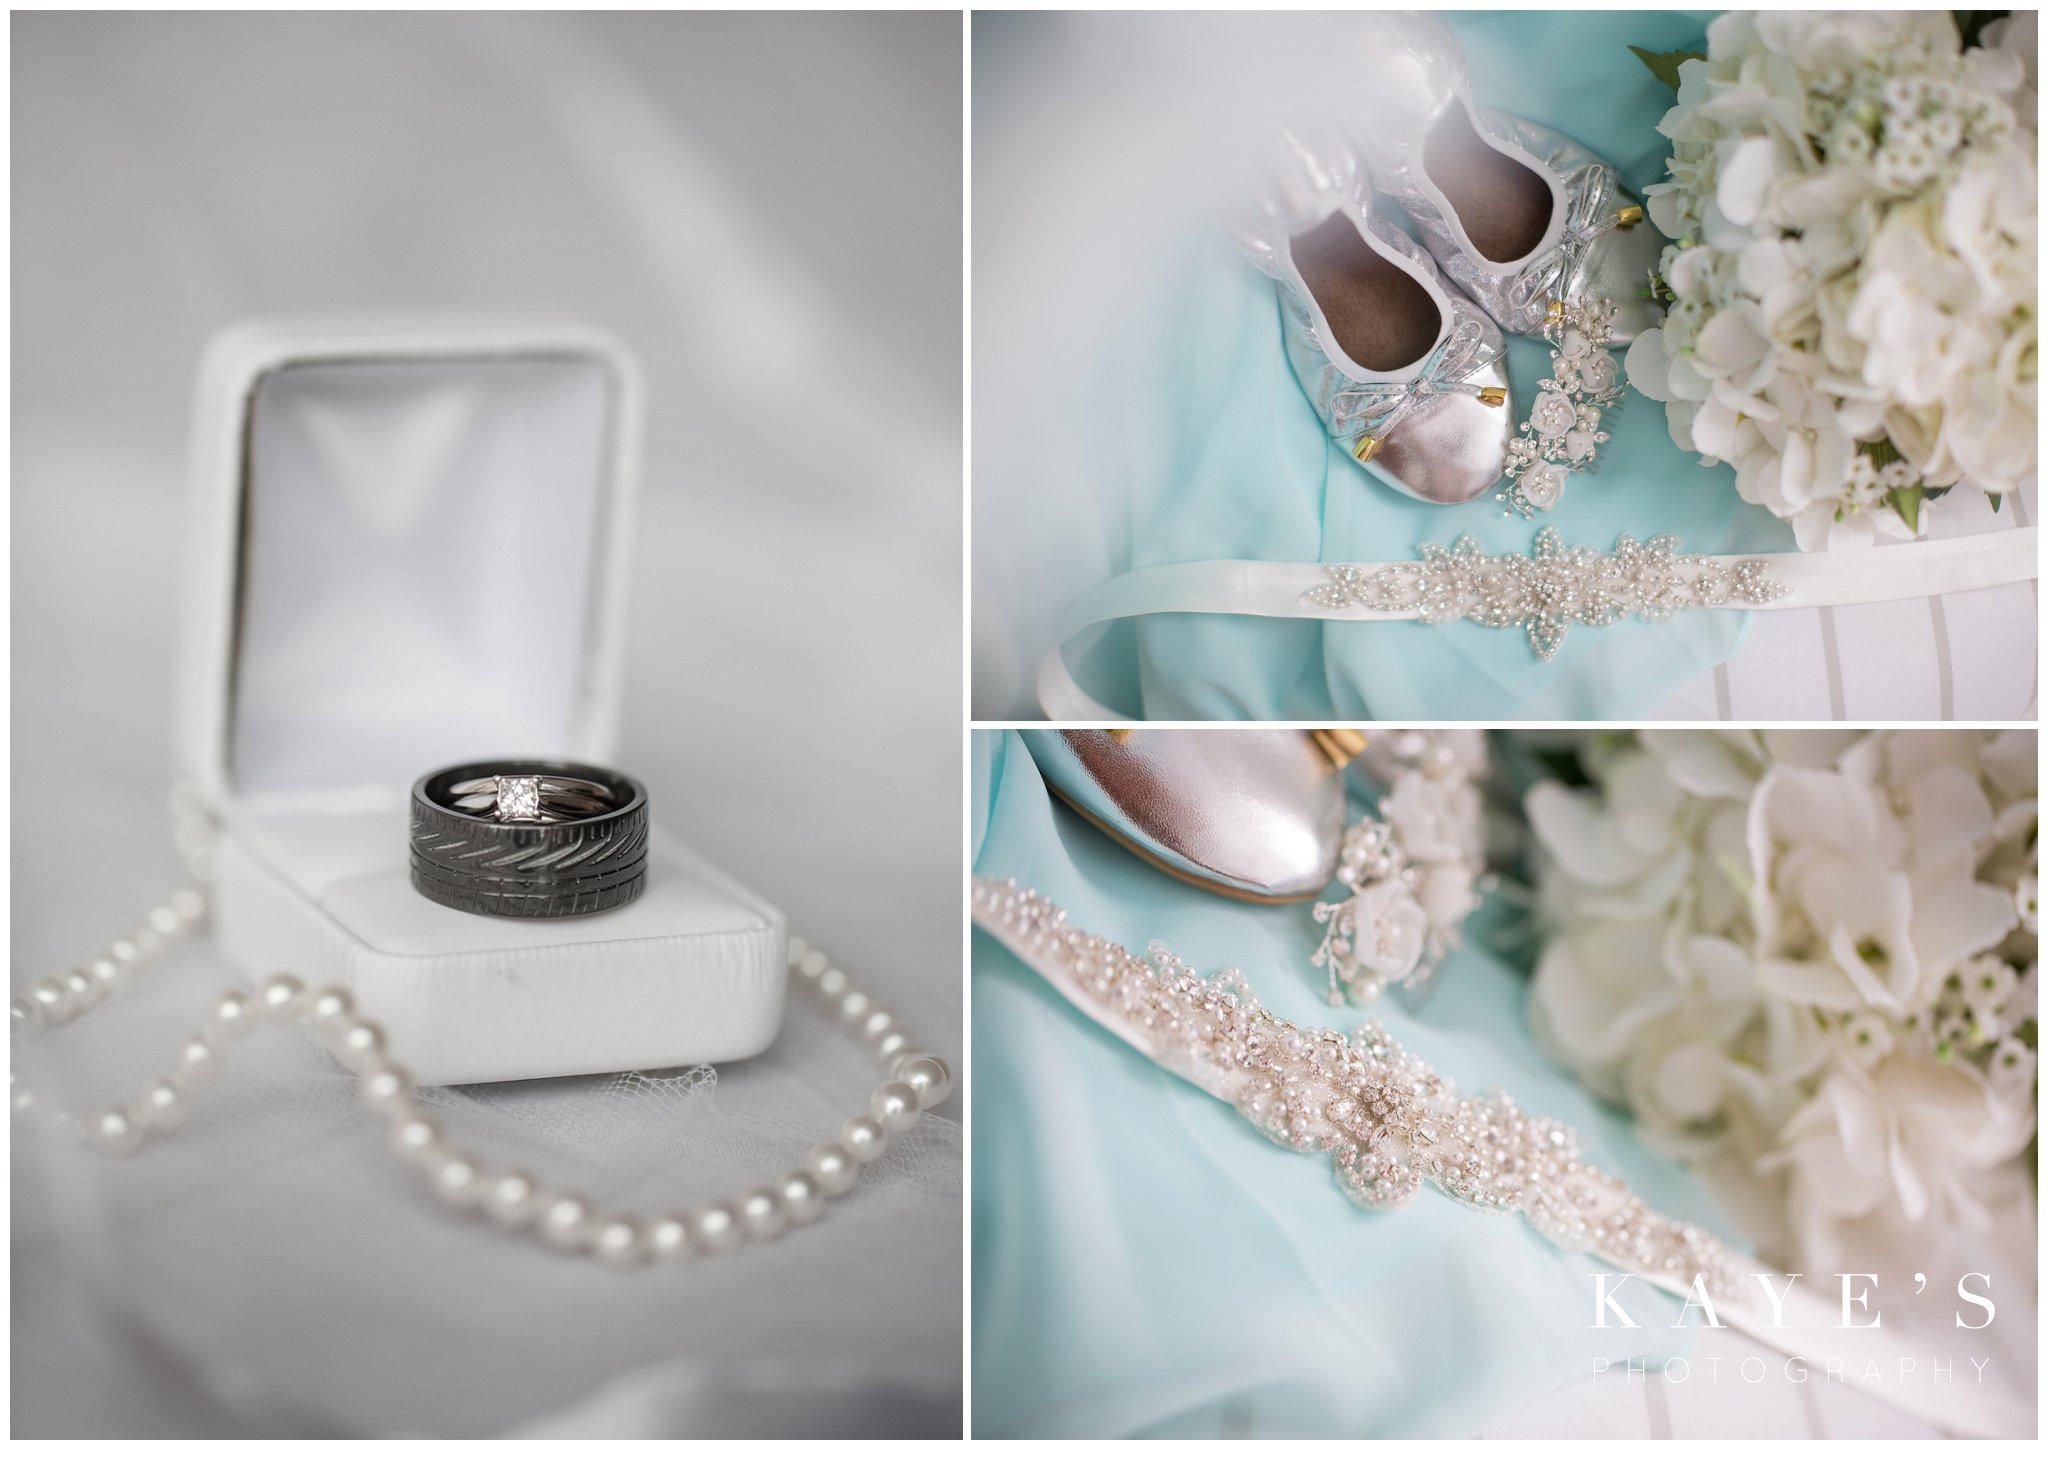 Bridal-details-getting-ready-shots